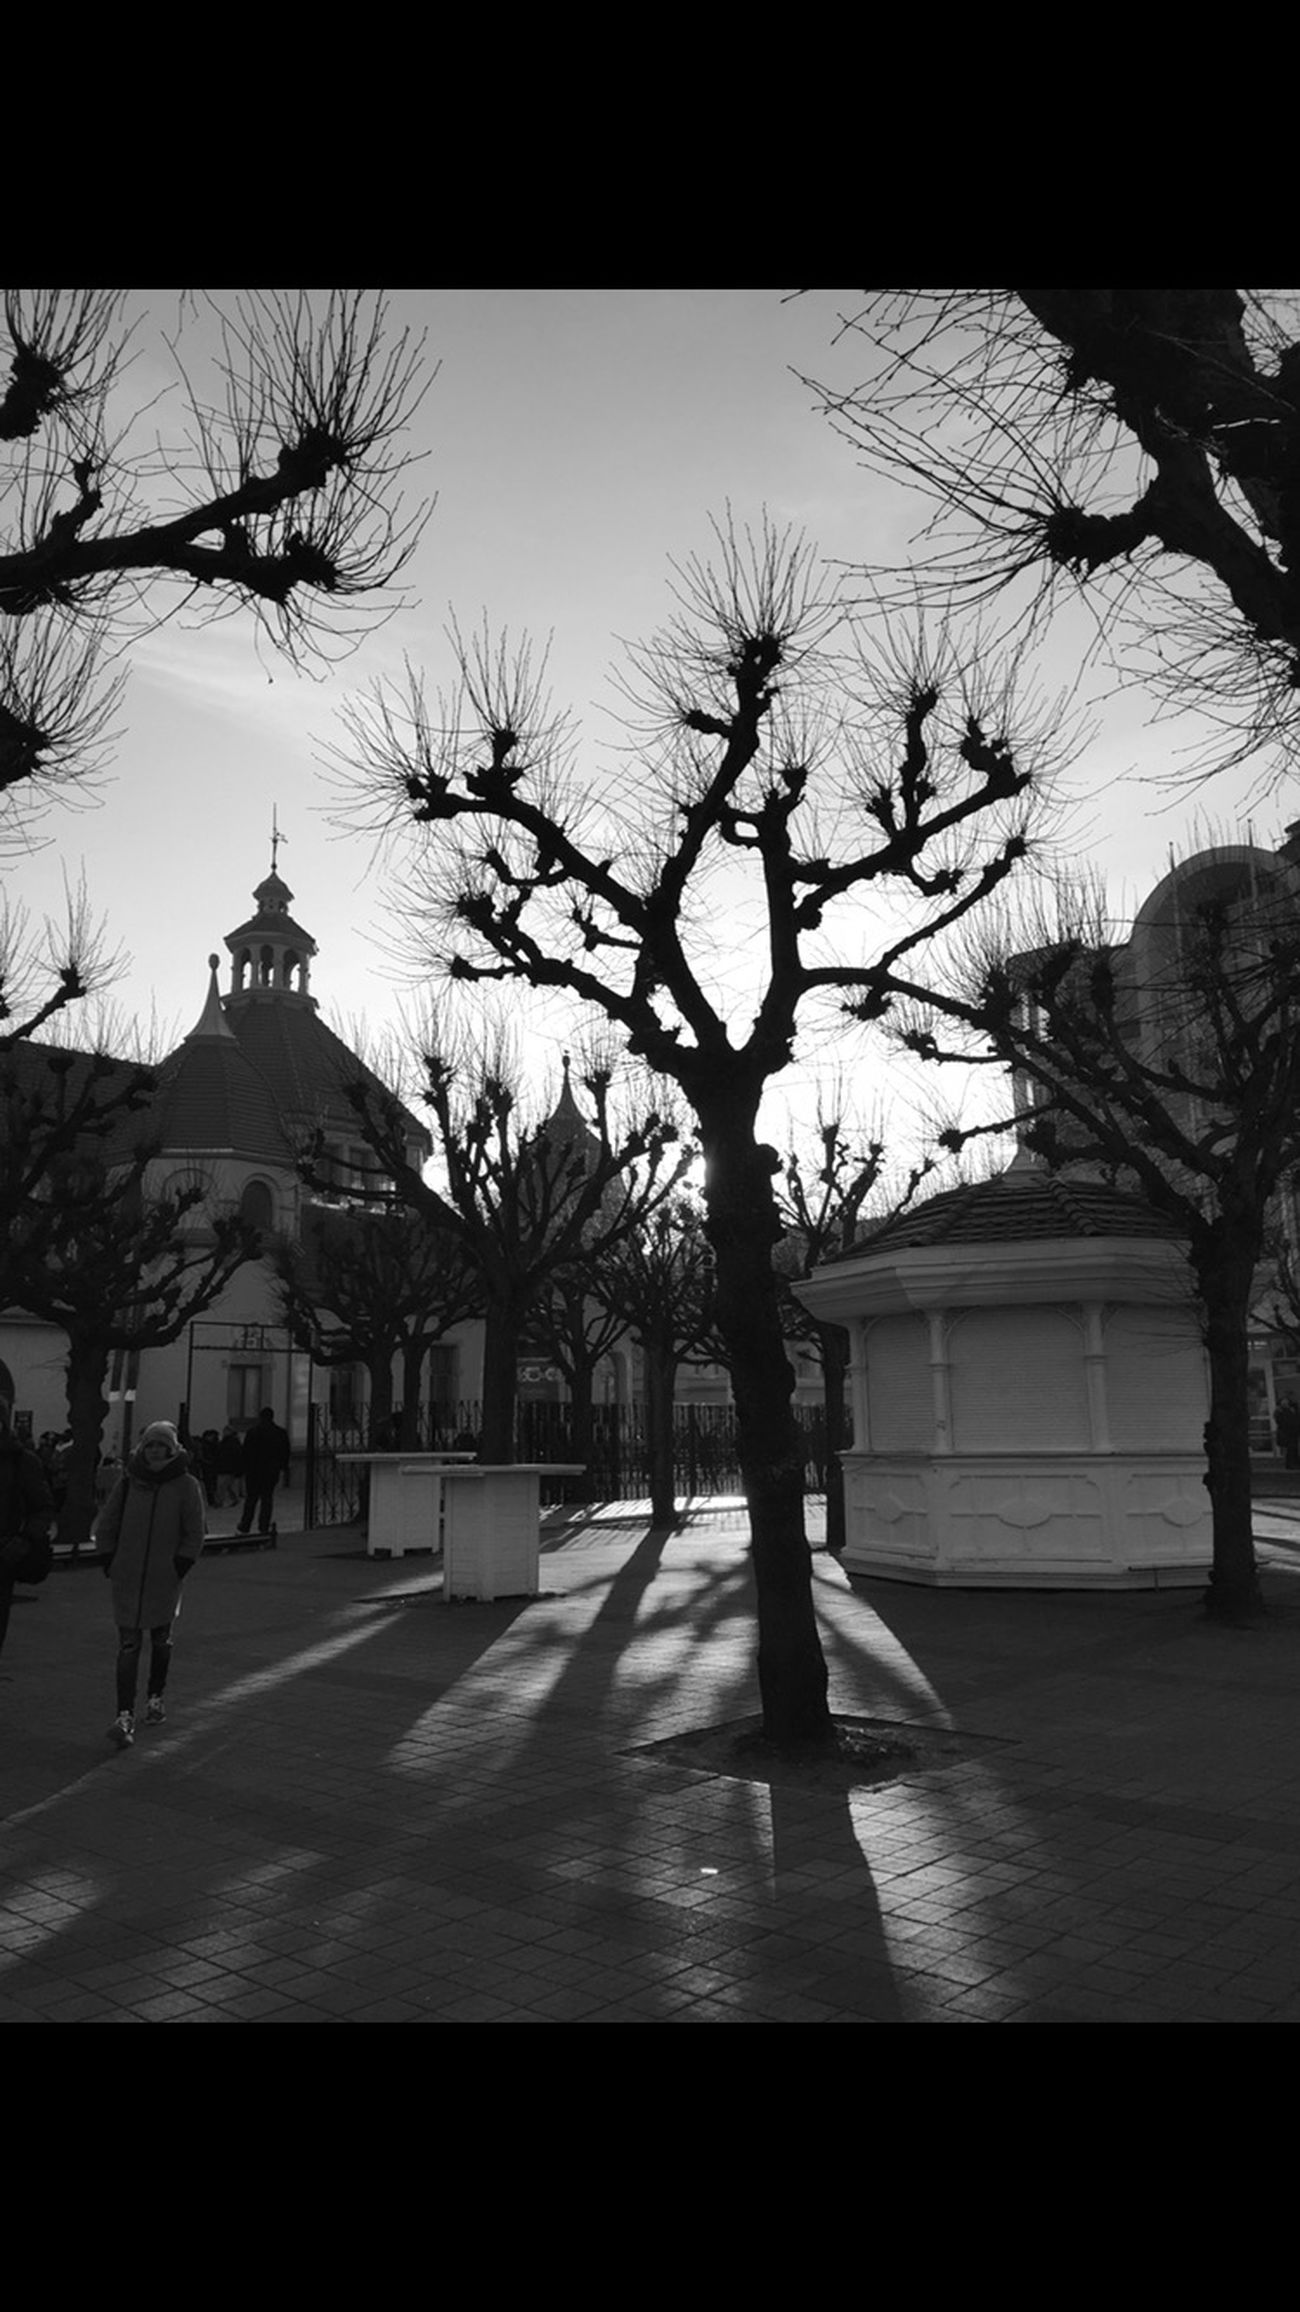 EyeEm Best Shots Streetphoto_bw Black And White Eye4photography  Bw_collection Light And Shadow Shadow Sopot Eye4delight Urban Landscape